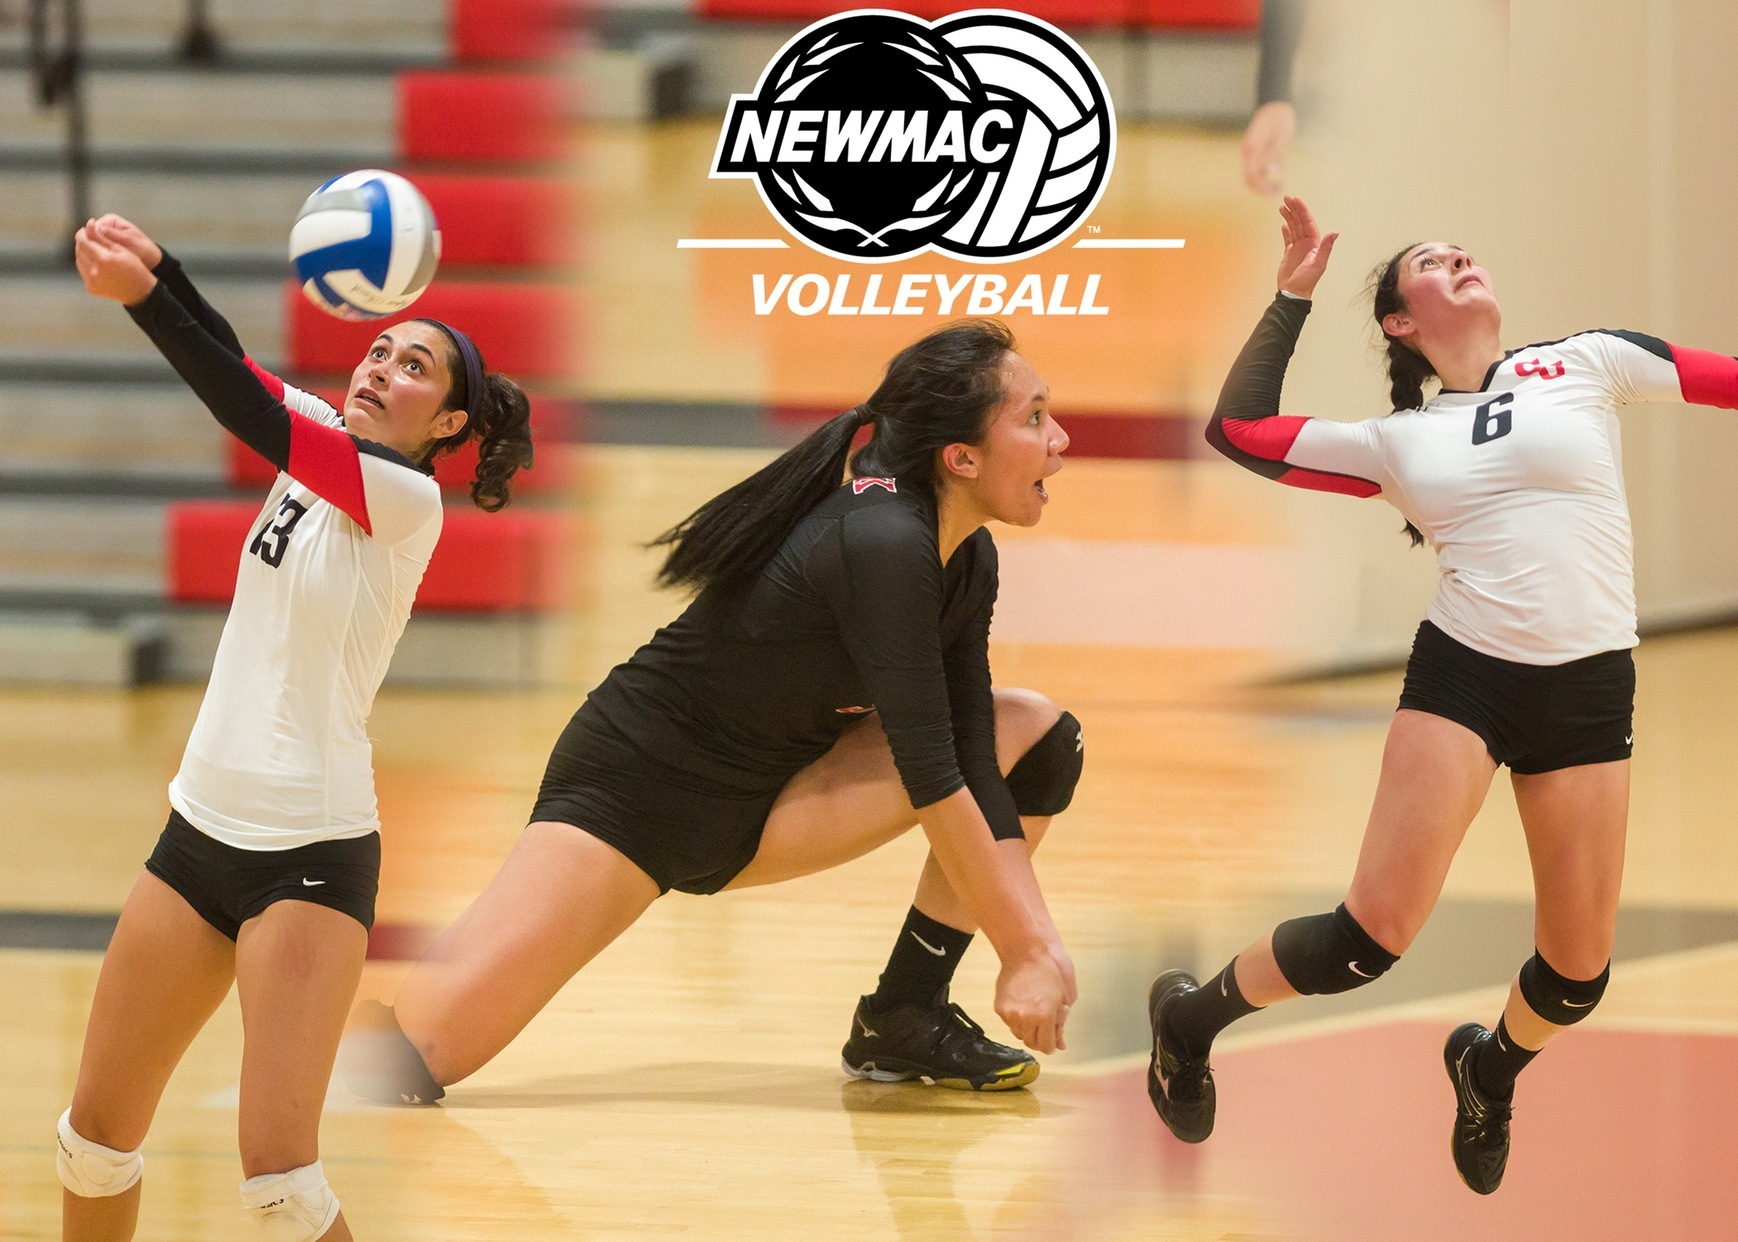 Quiban Named NEWMAC Defensive Player of the Year, Ramos First-Team All-Conference